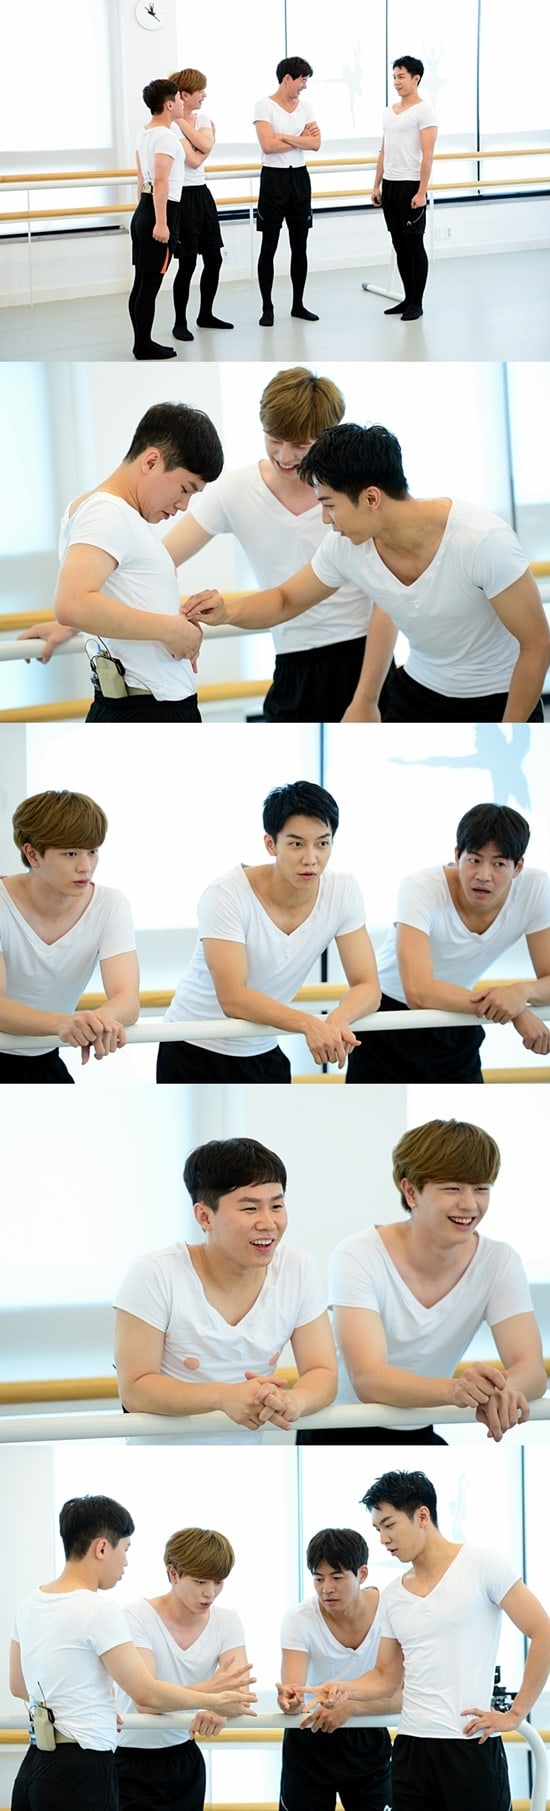 """- Master in the House - BTOB's Yook Sungjae, Lee Seung Gi, And Lee Sang Yoon Get Into Ballet Tights For """"Master In The House""""  - Master in the House - BTOB's Yook Sungjae, Lee Seung Gi, And Lee Sang Yoon Get Into Ballet Tights For """"Master In The House"""""""